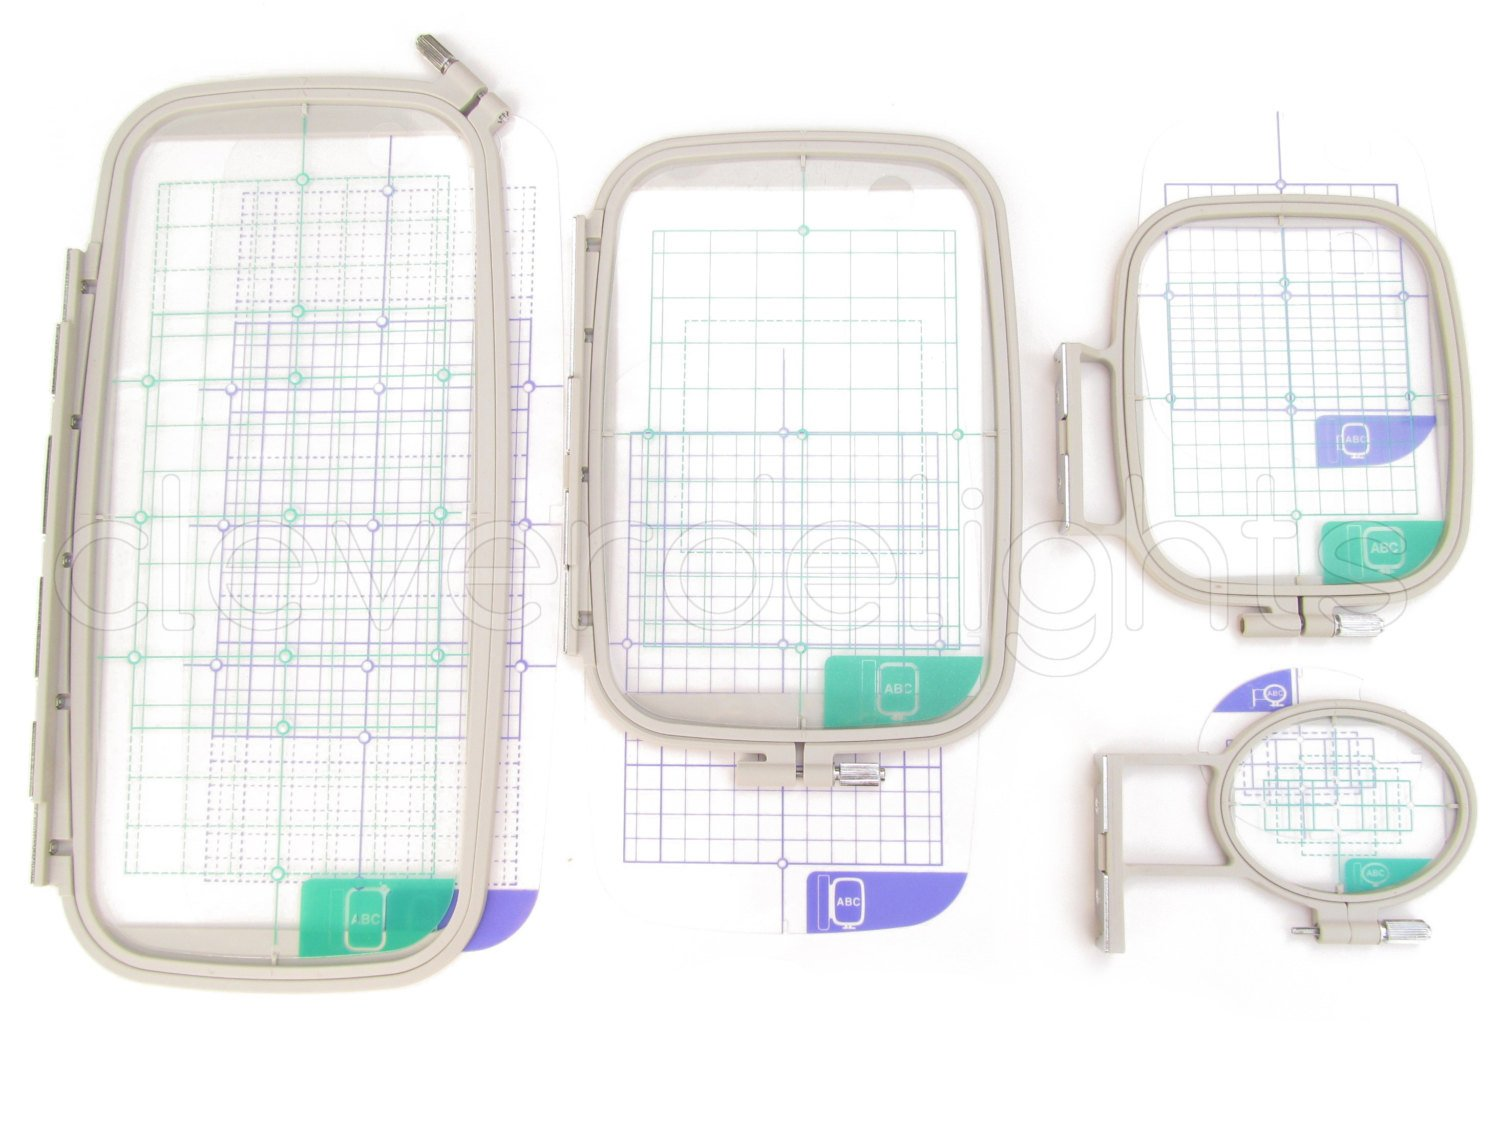 4-Piece Embroidery Hoop Set - Replaces SA442 SA443 SA444 SA445